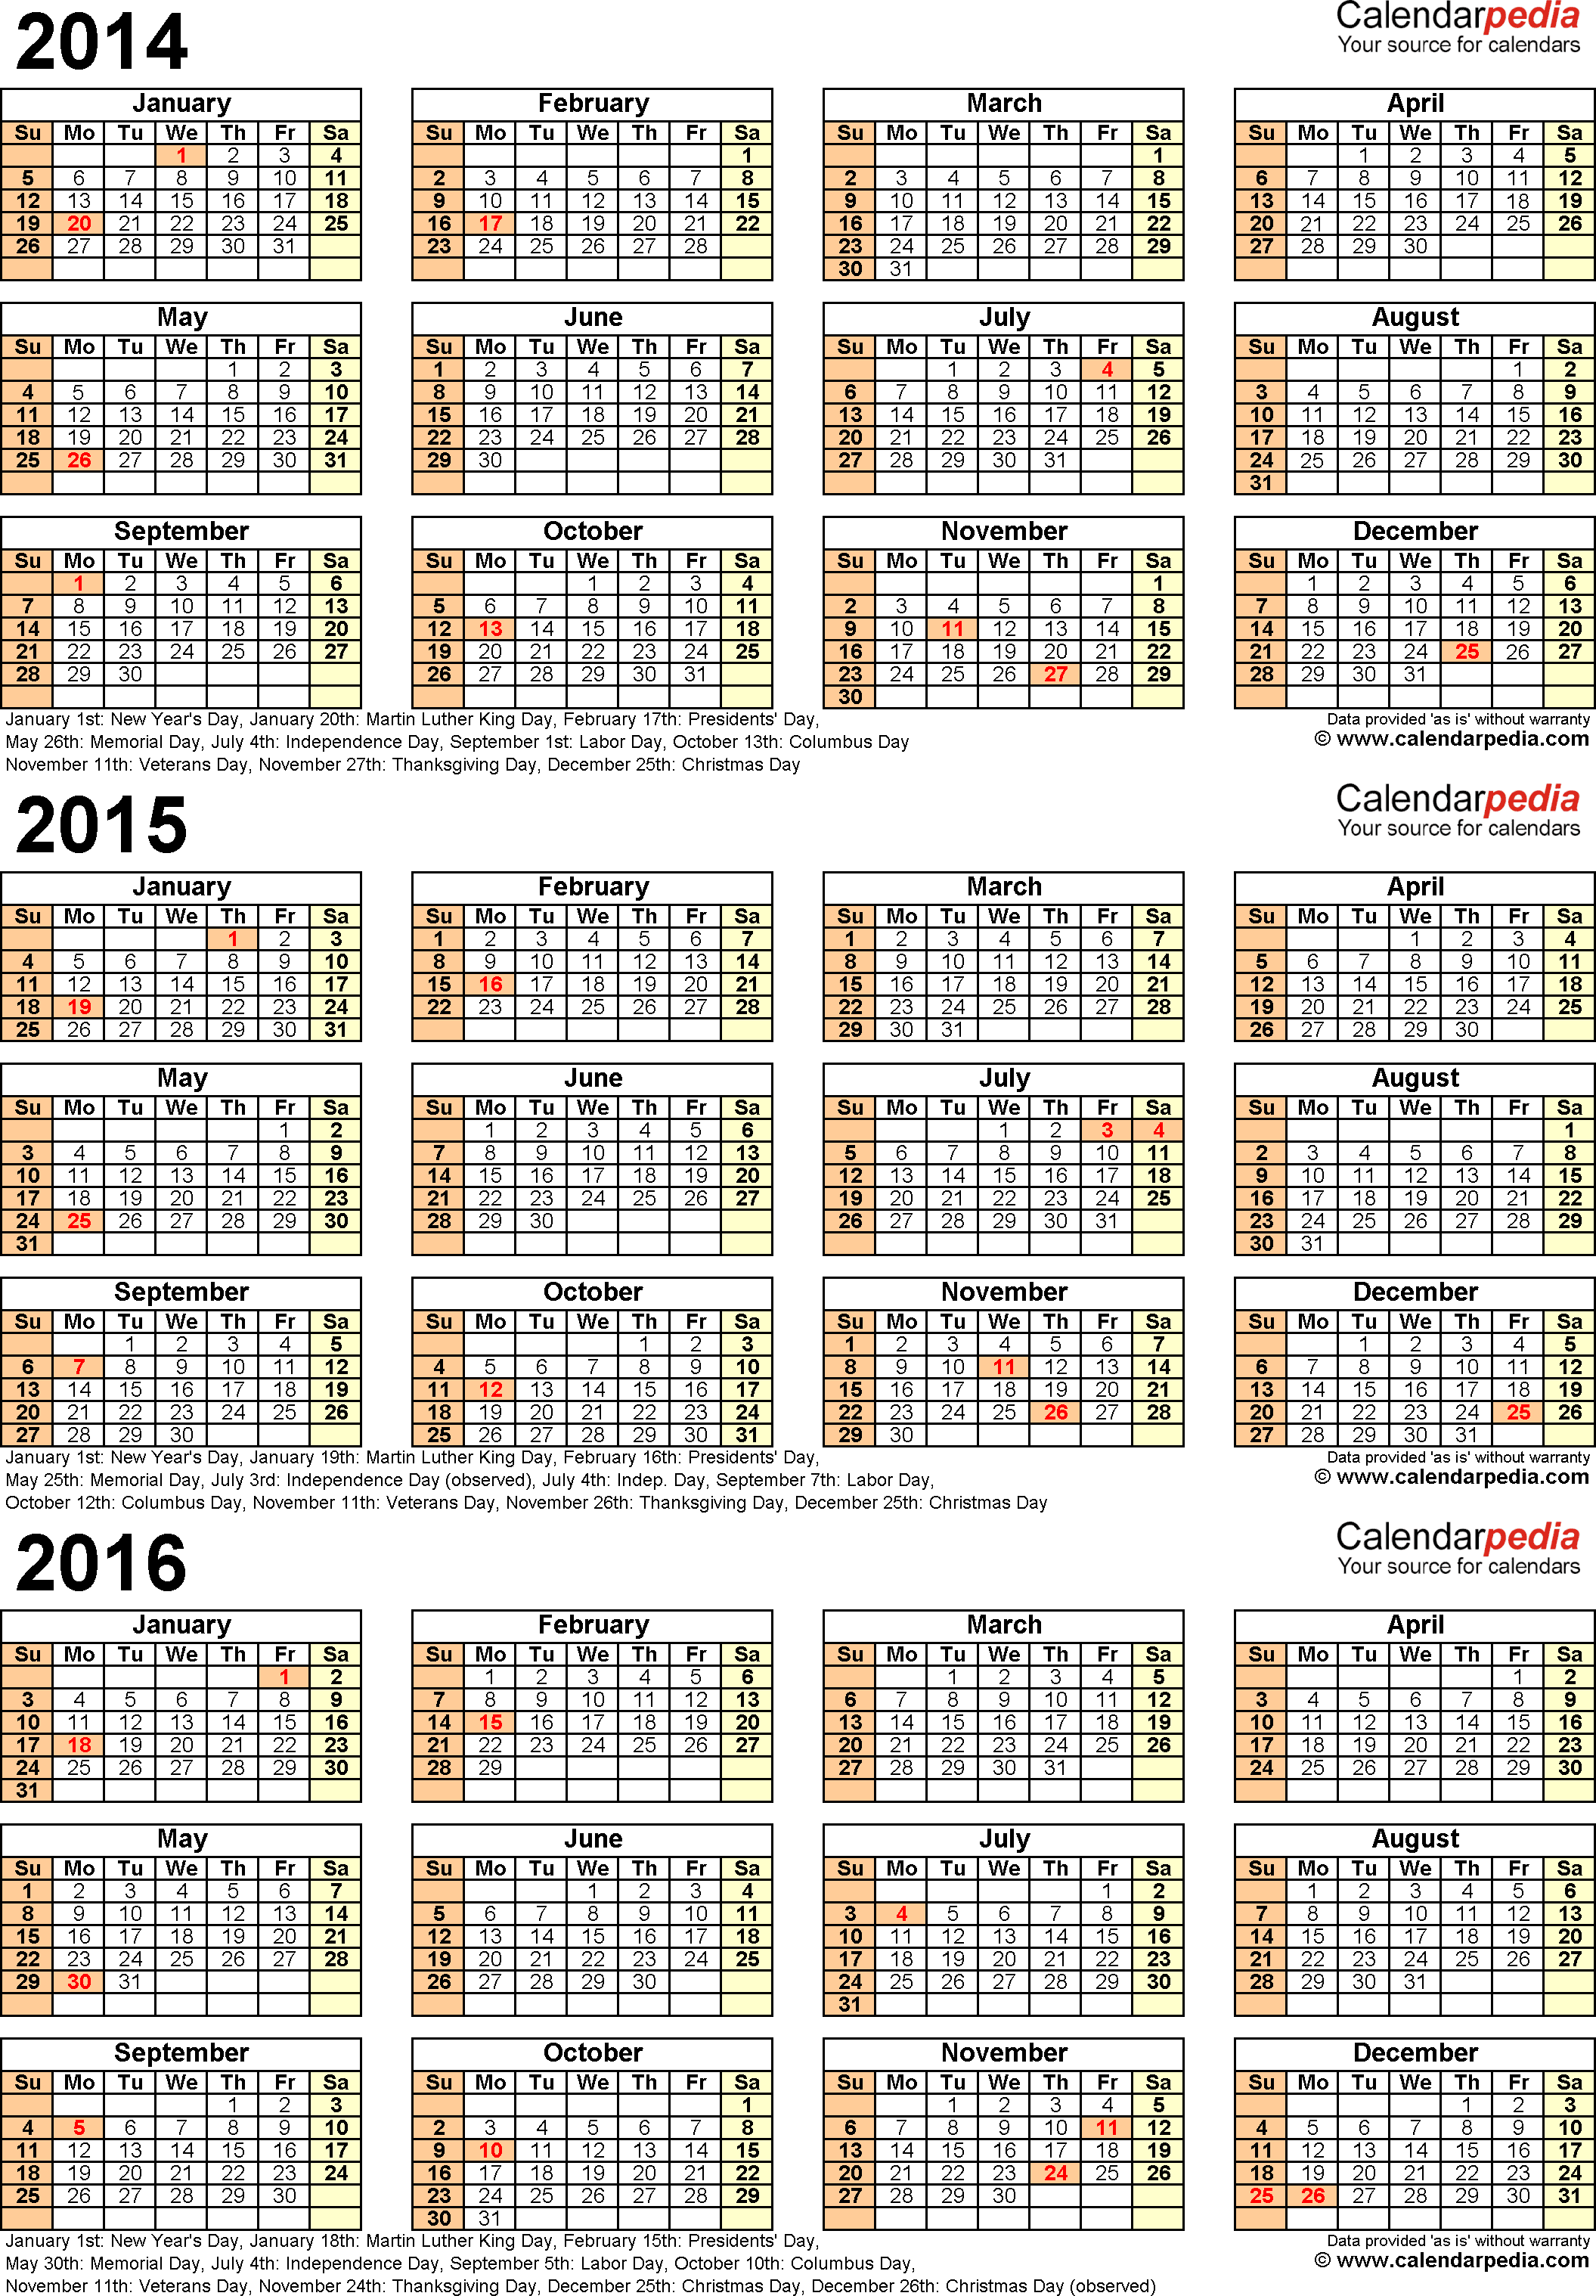 Template 6: Word template for three year calendar 2014/2015/2016 (portrait orientation, 1 page)